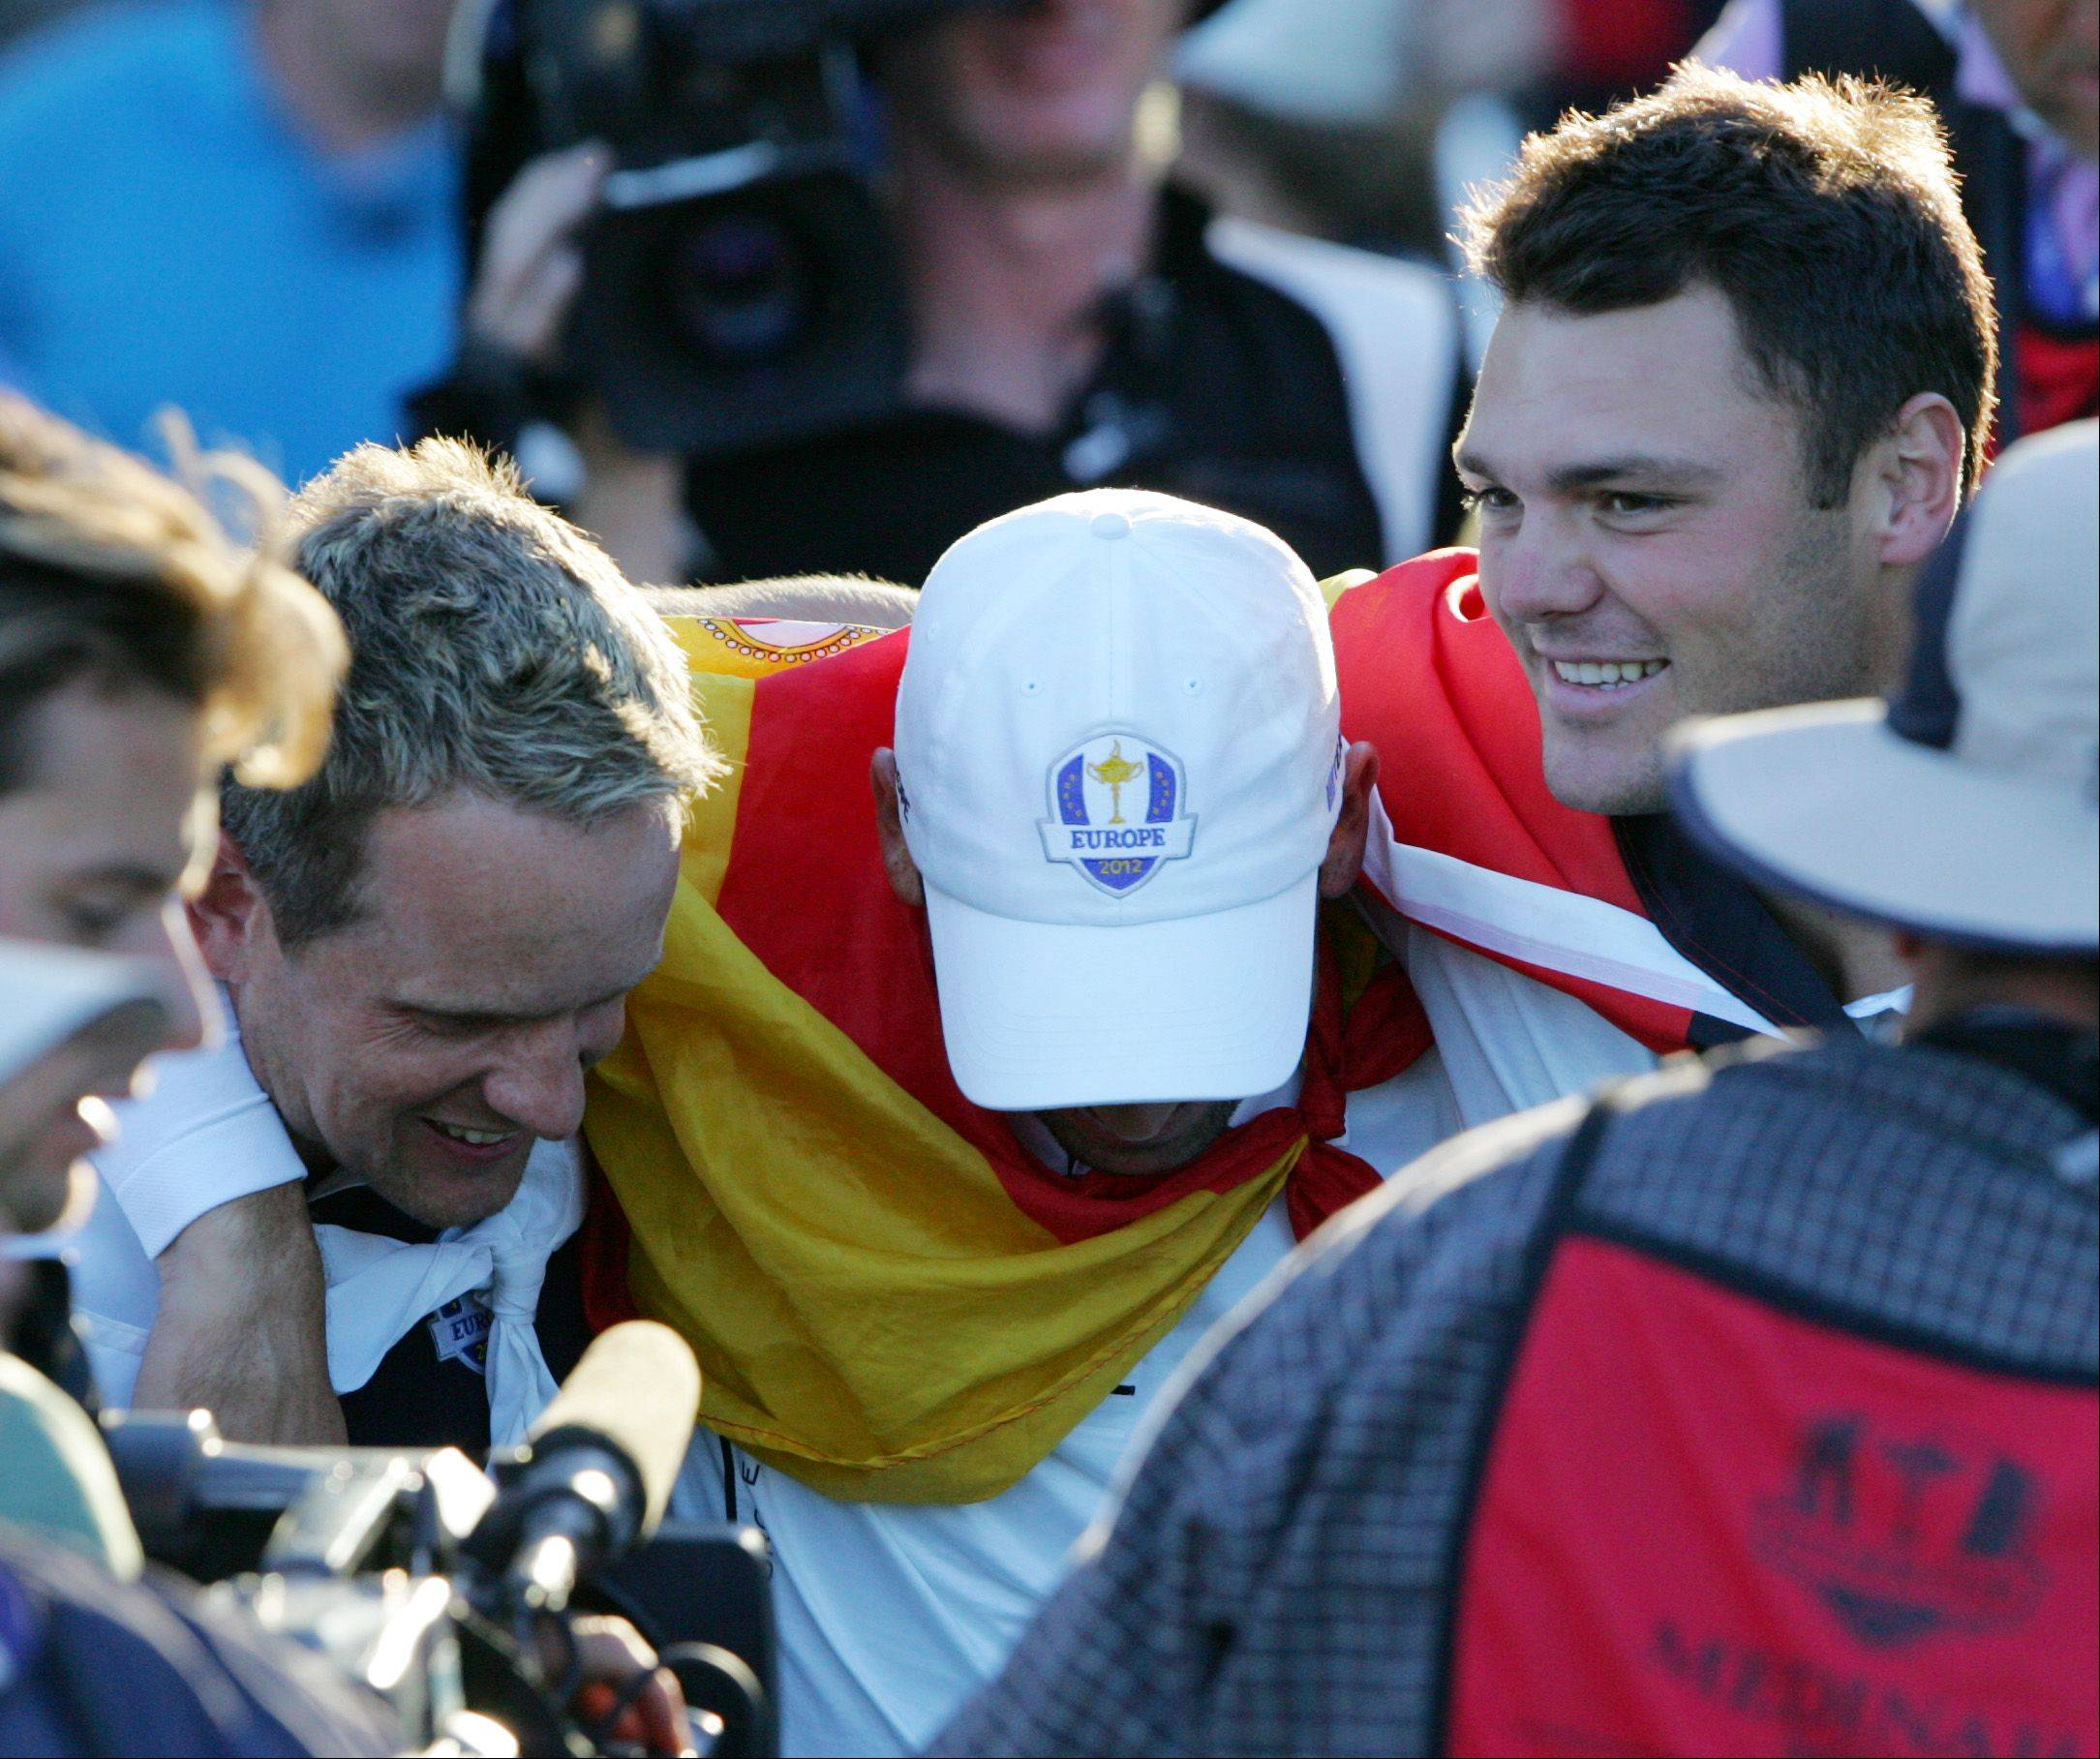 European teammates Luke Donald, left, Sergio Garcia and Martin Kaymer celebrate in Medinah Sunday after winning the Ryder Cup.